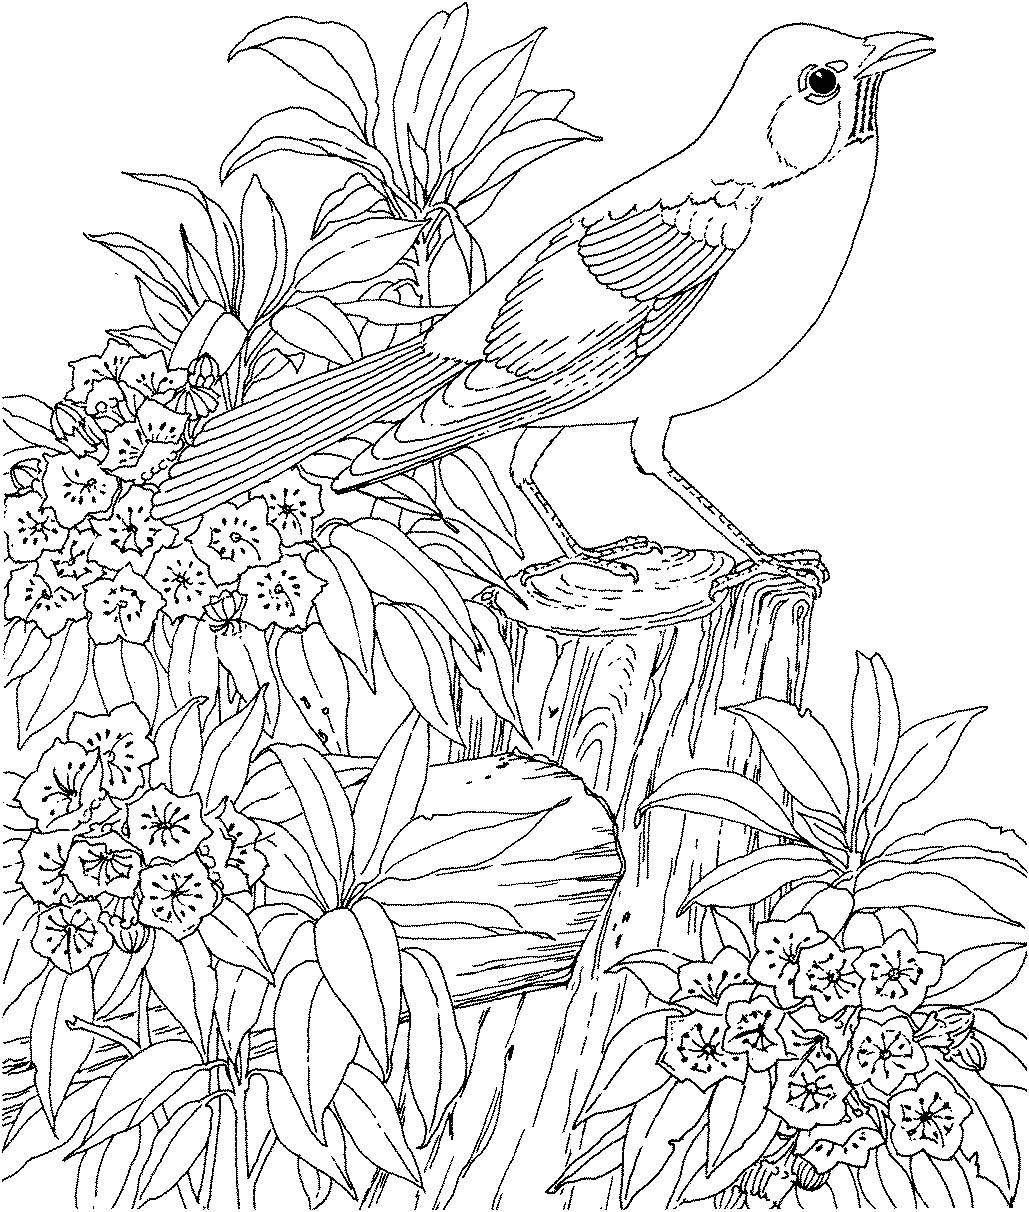 Free Online Coloring Pages To Print